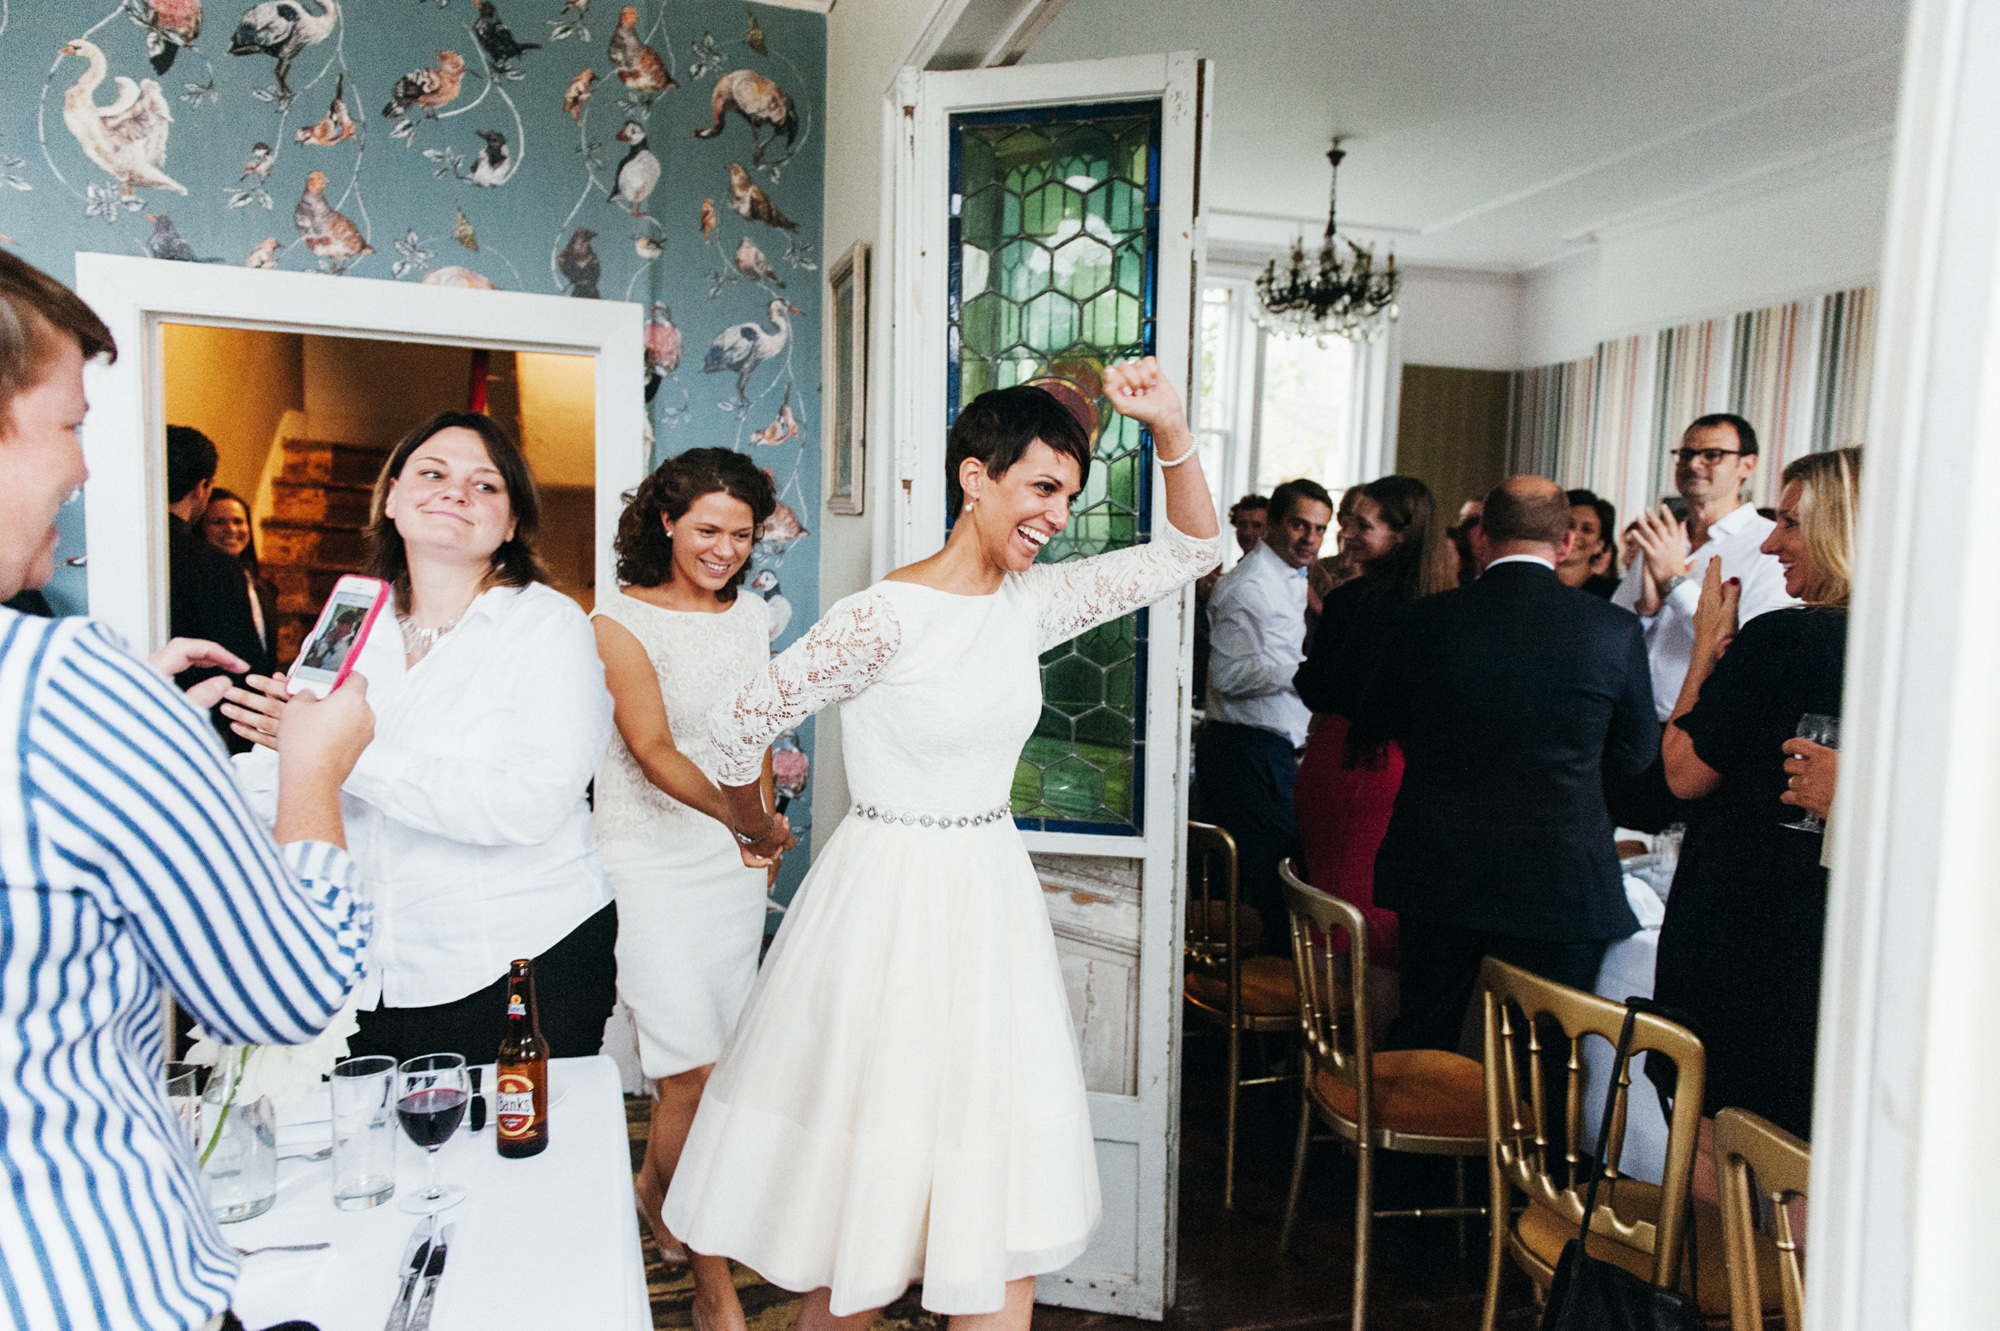 Lesbian brides enter, wedding guests cheer - quirky creative gay friendly wedding photographer The Roost Dalston London wedding photographer © Babb Photo